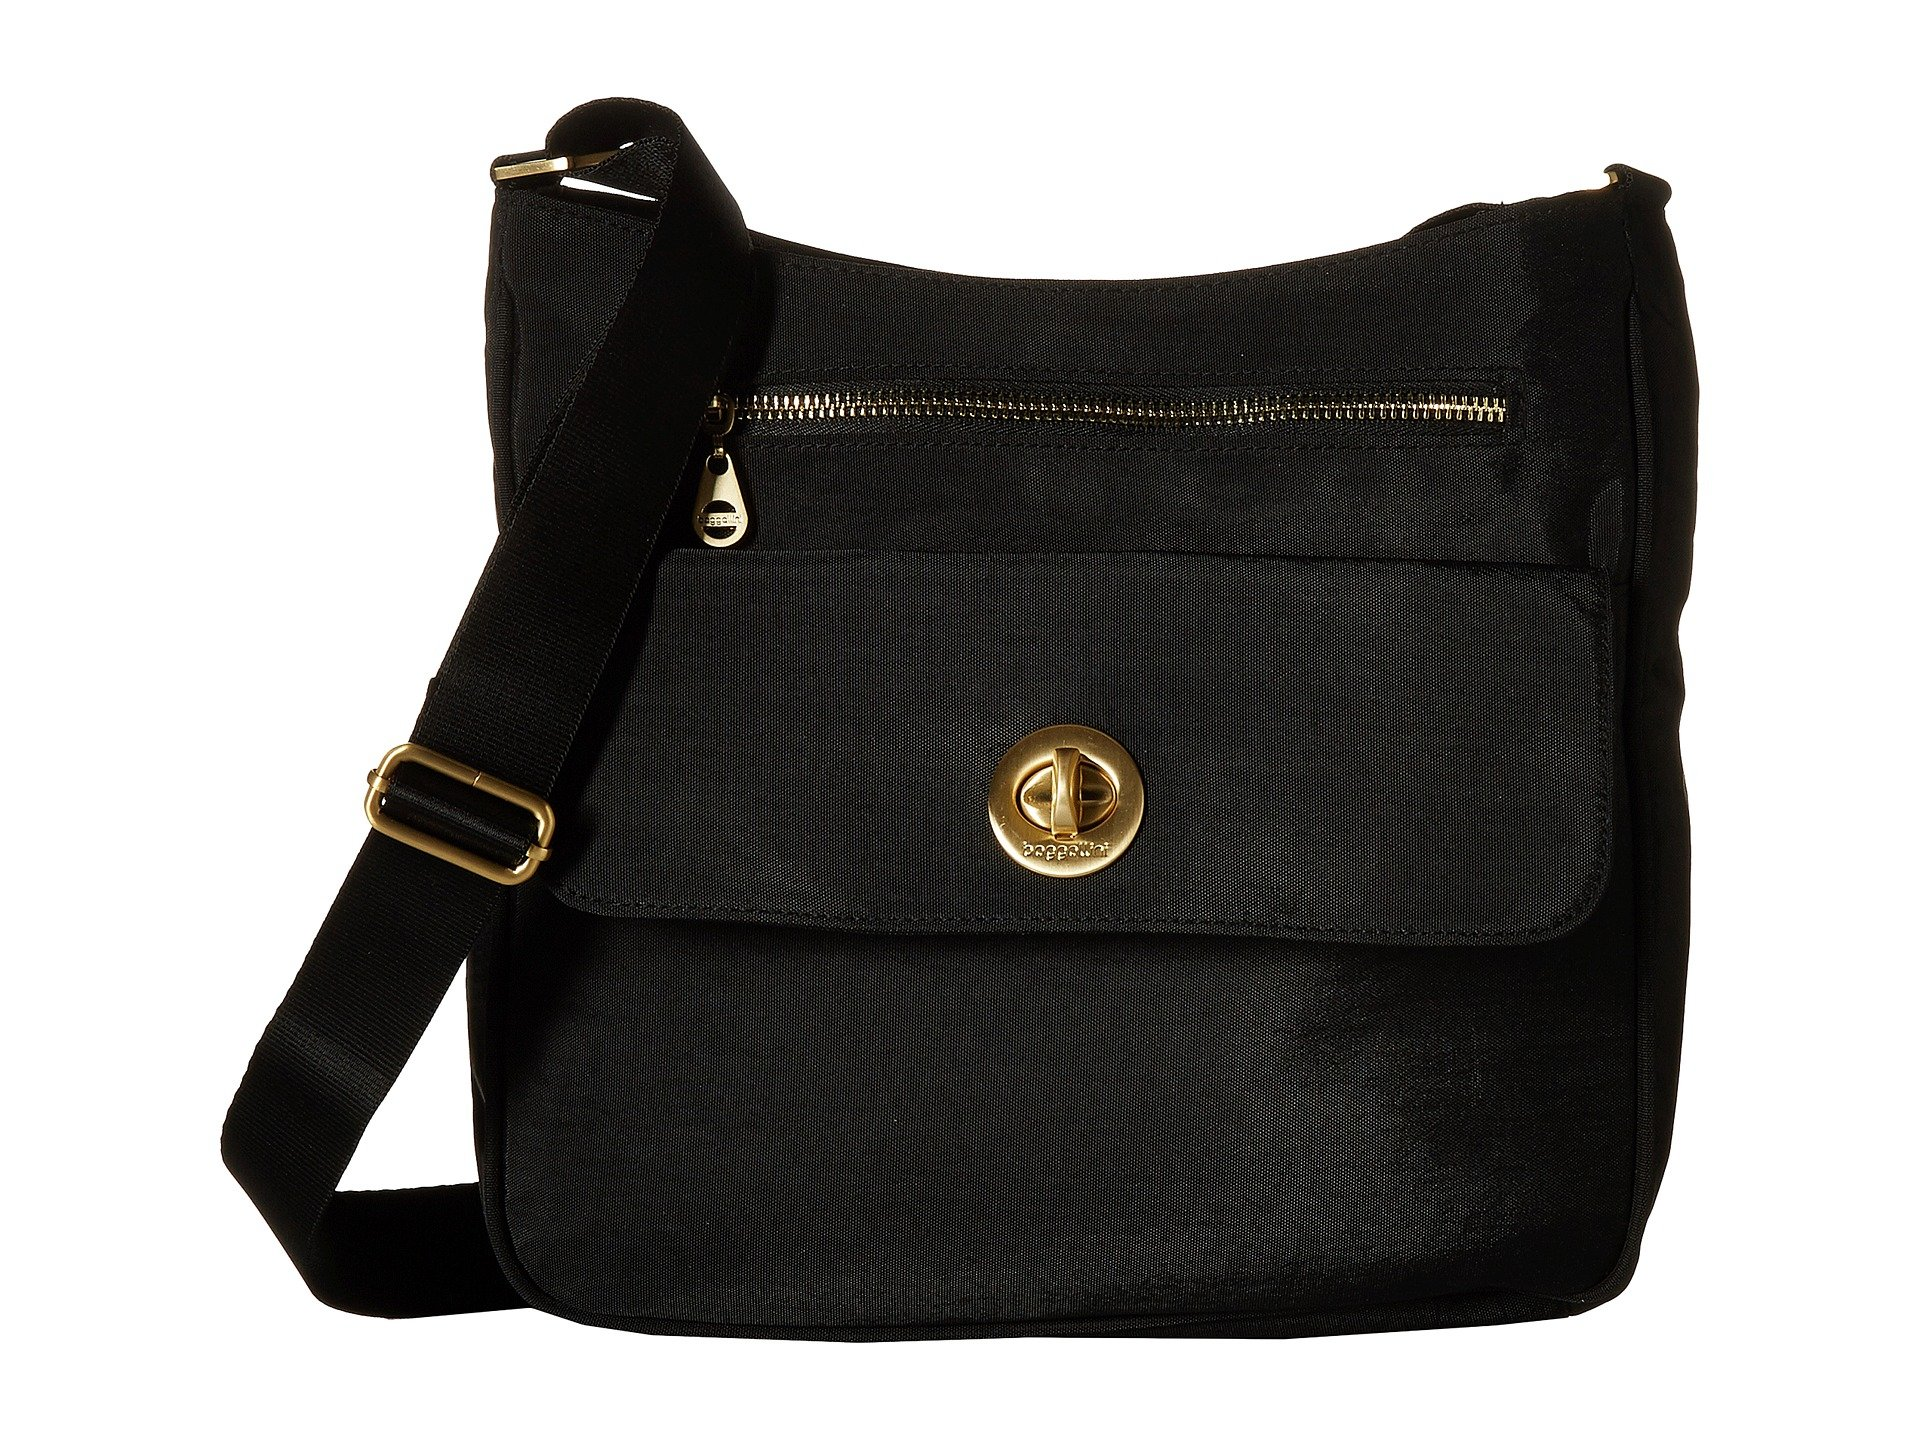 Black Flap Zip Top Baggallini Antalya Crossbody wqFX14n8S